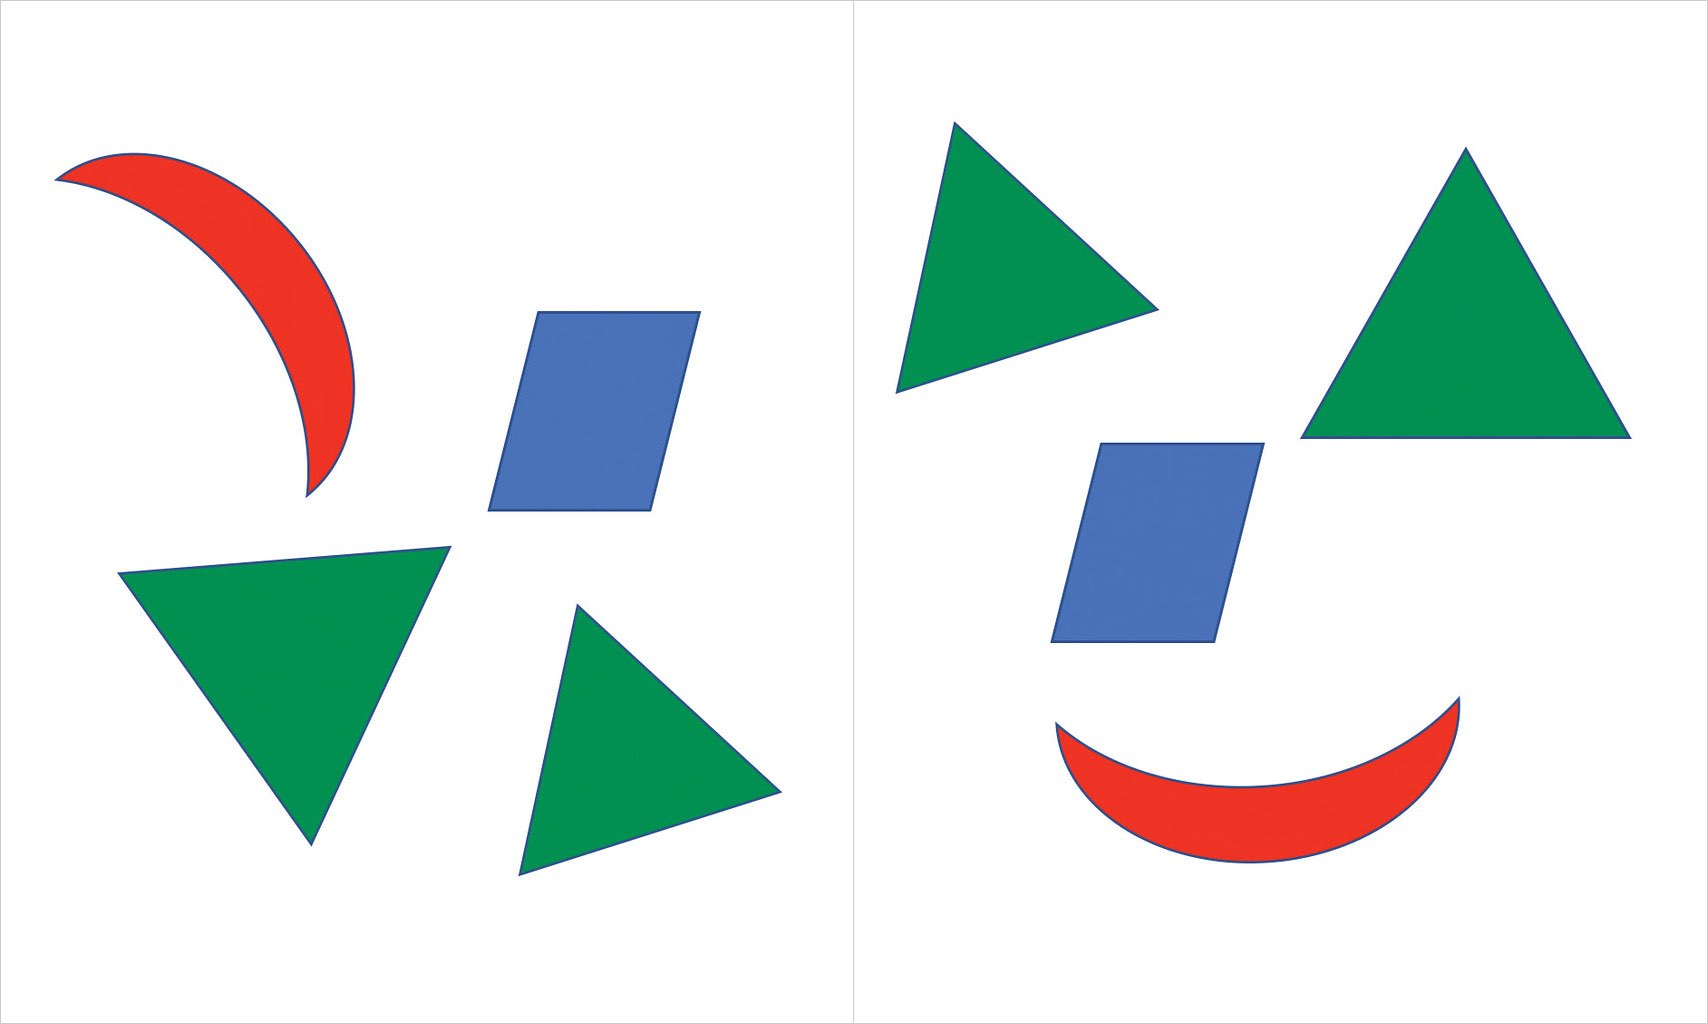 An assortment of the same four shapes side by side. The grouping on the right looks like a face based on the shape positions.